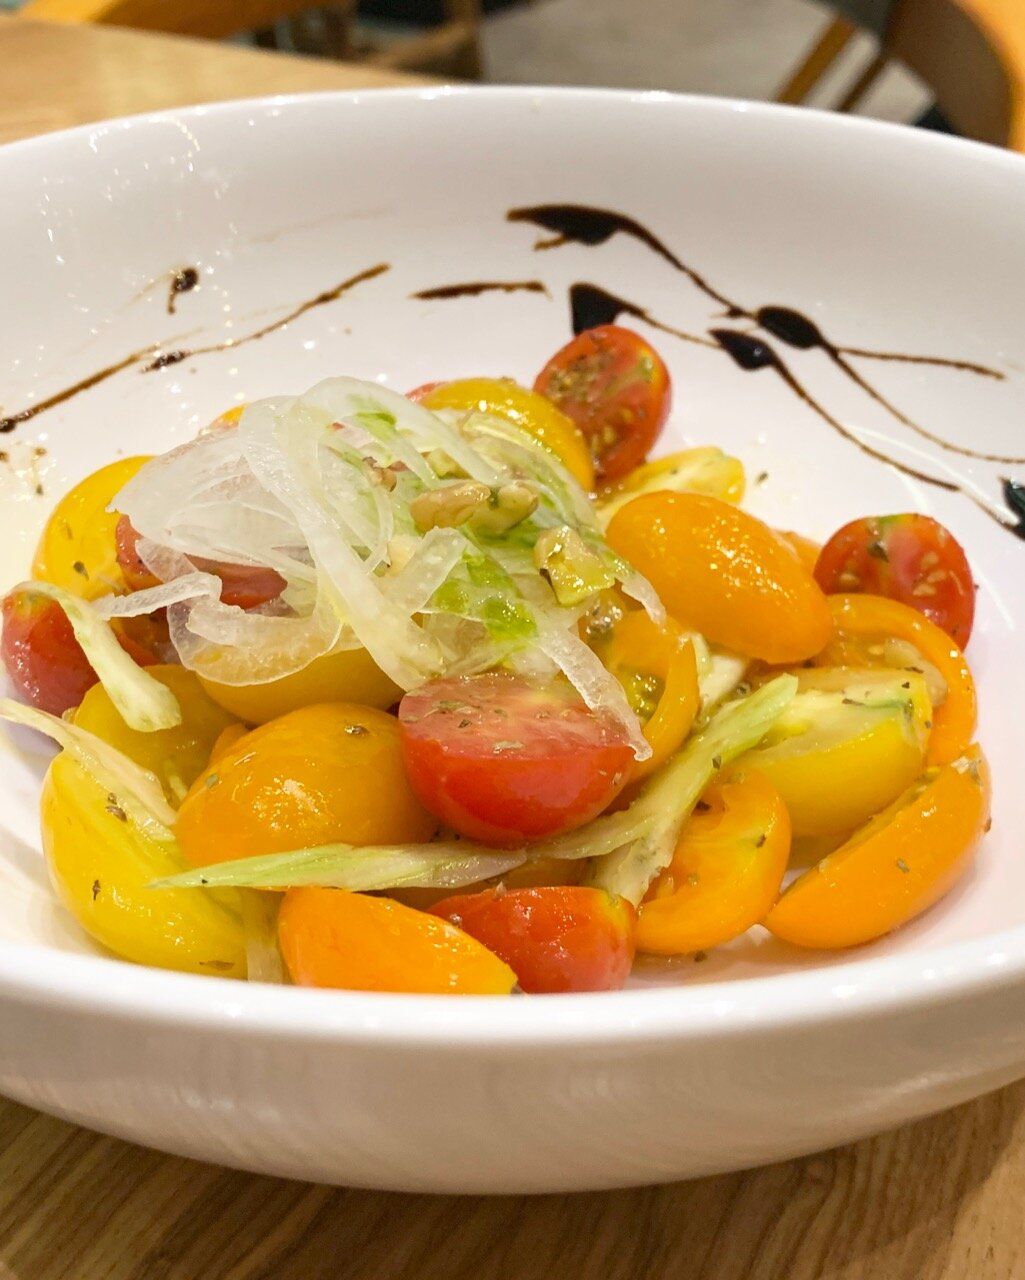 - The native tomato salad that mustn't be skipped!